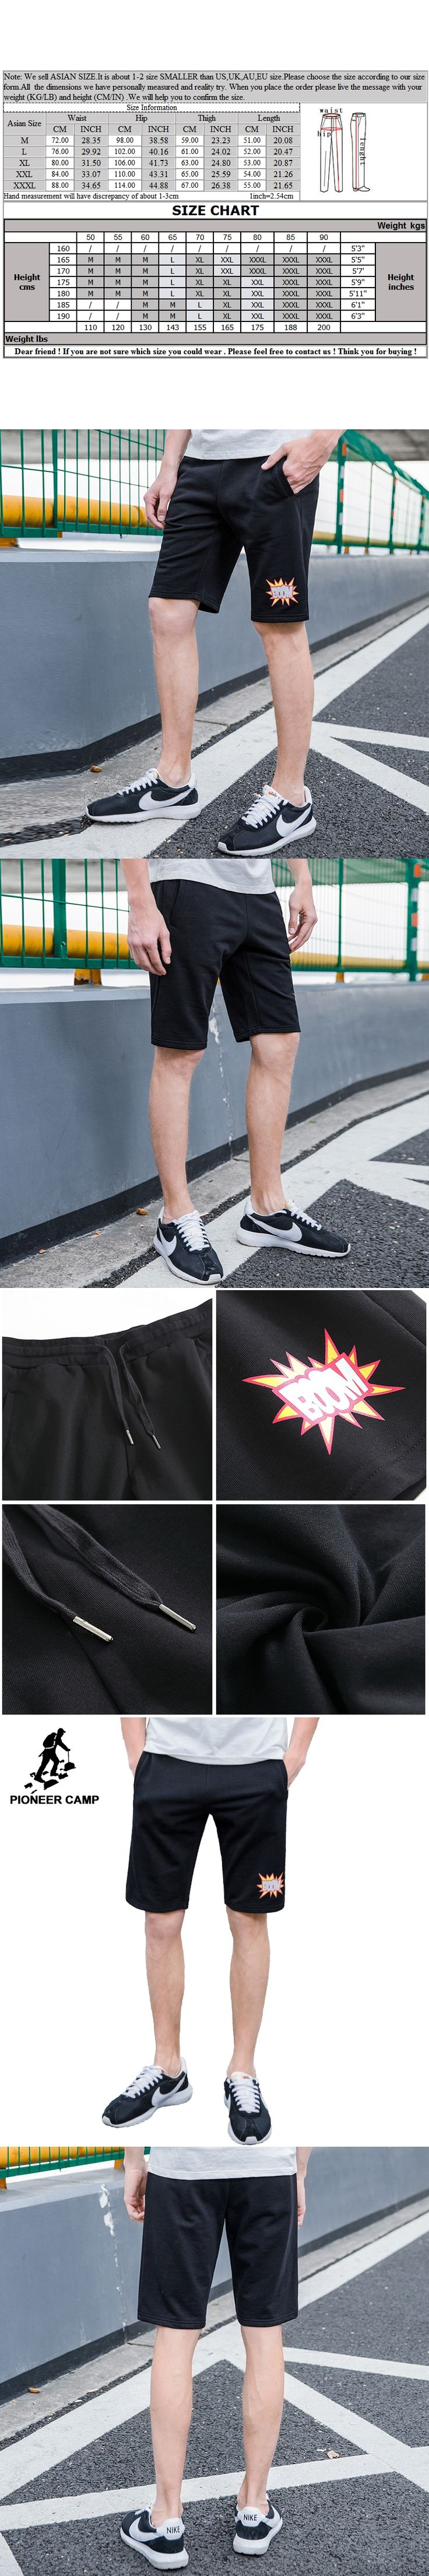 Pioneer Camp new arrival brand men shorts funny printed black shorts male top quality summer bermuda boardshorts ADK702251